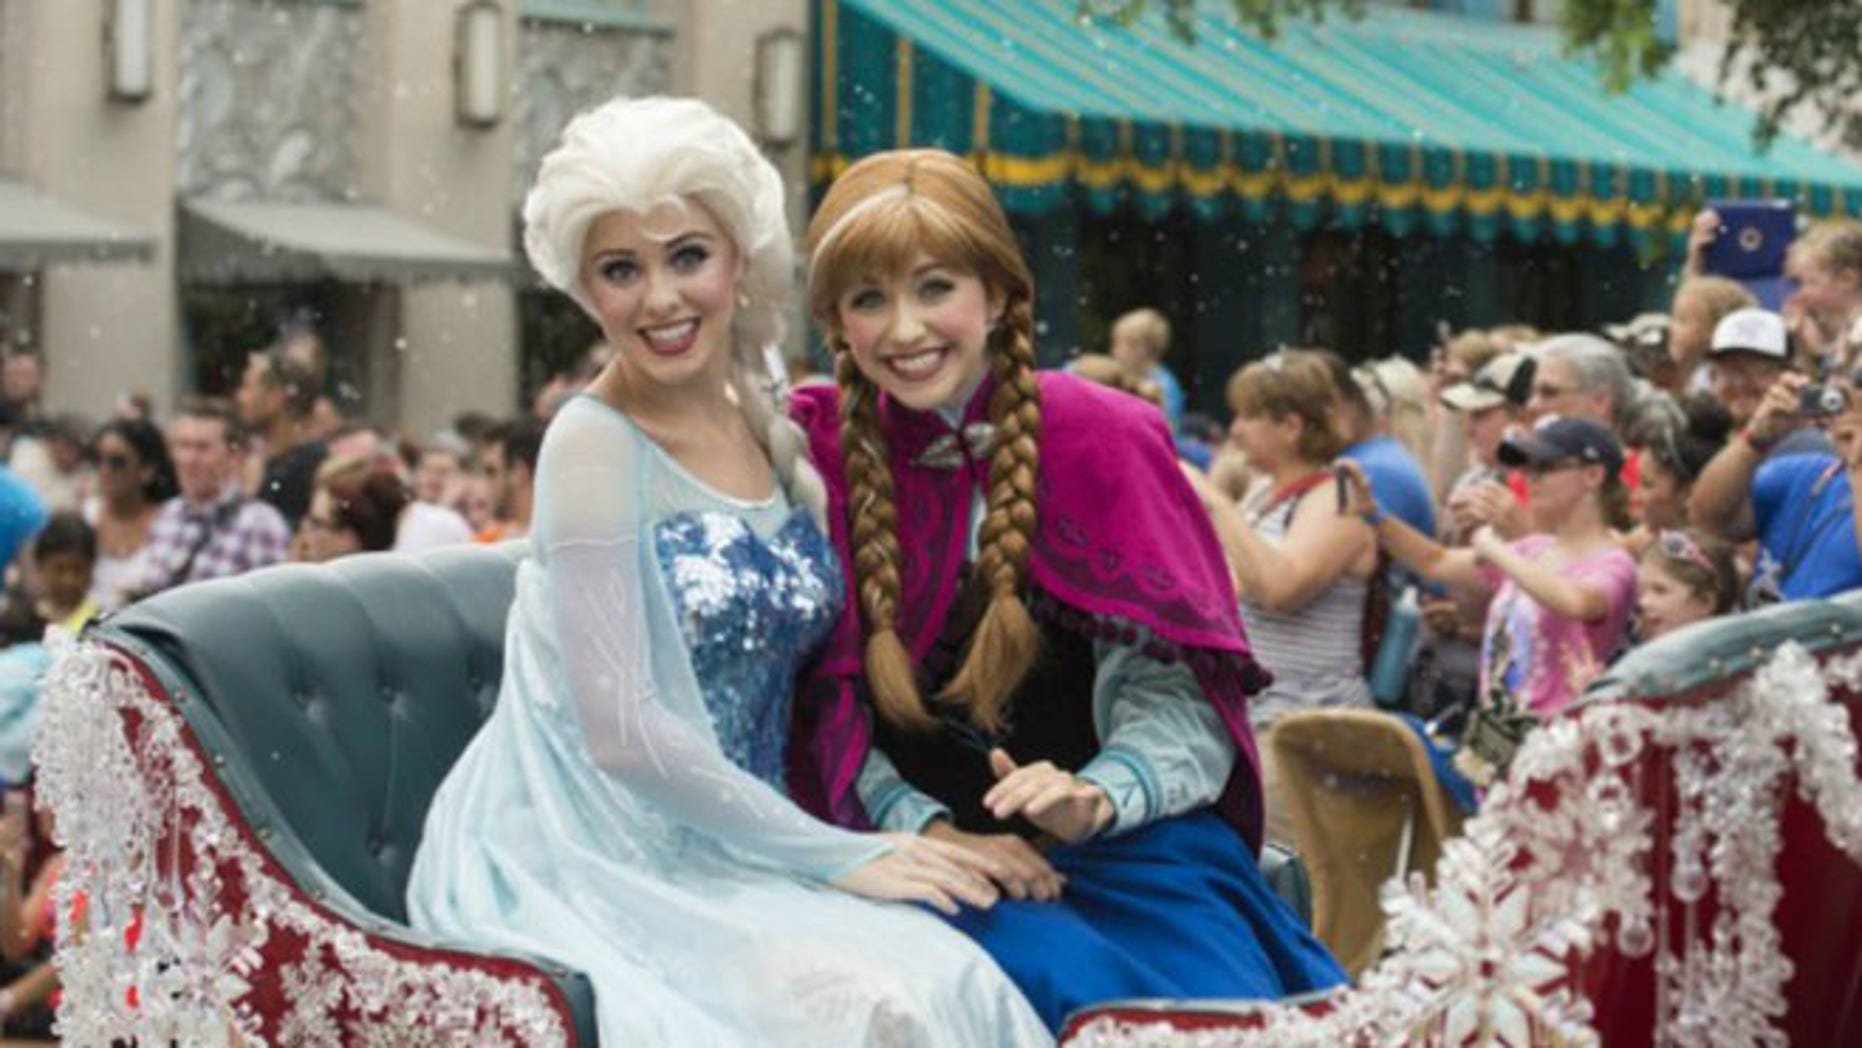 From character greetings to sing-alongs, there's more to do at Disney.